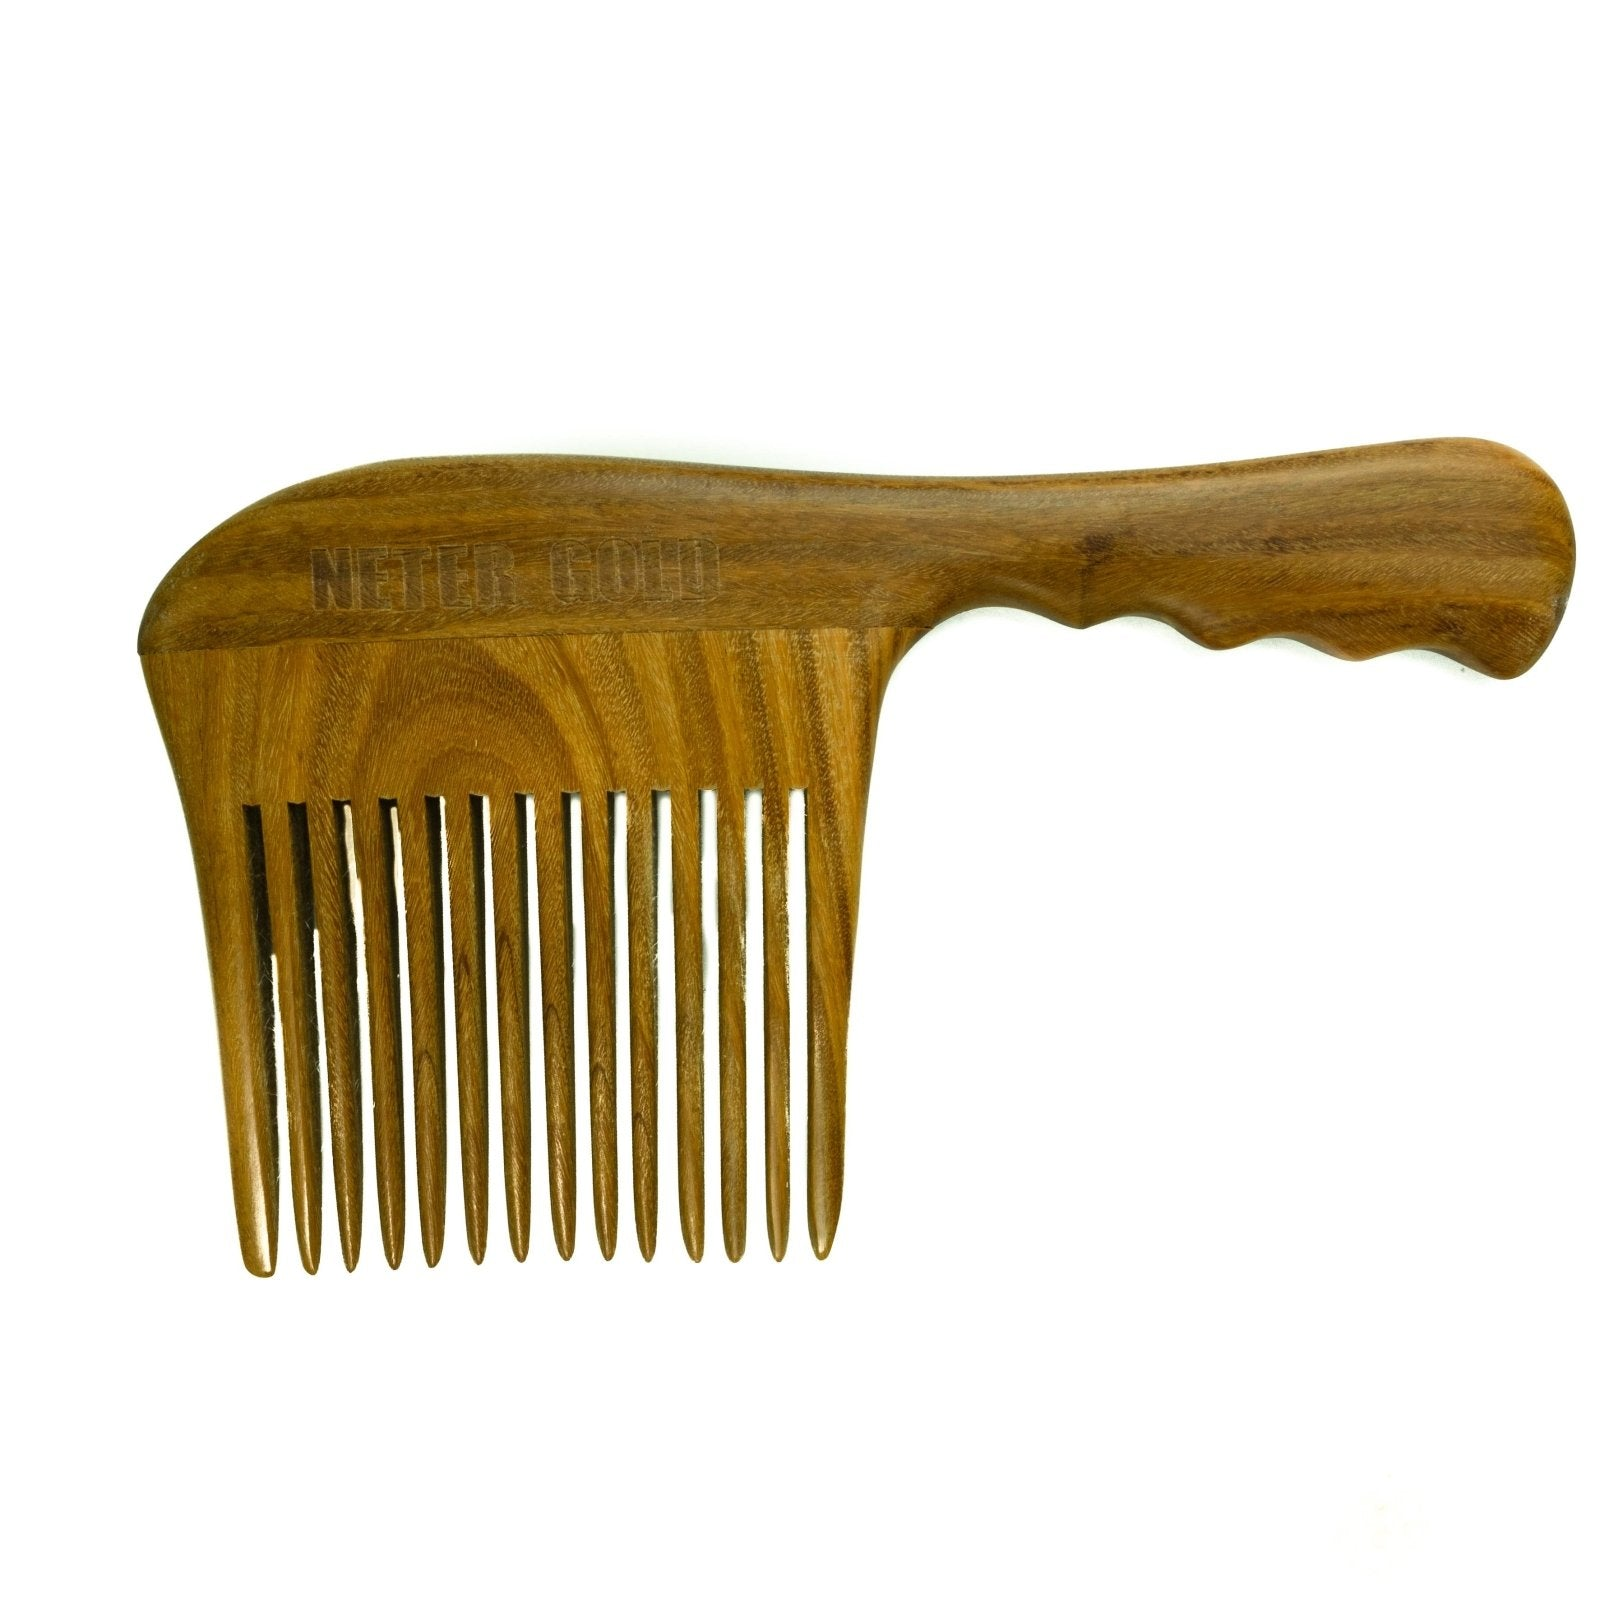 DEFECT!! - Epic Jumbo Wooden Comb - Neter Gold - NTRGLD - NETER GOLD - All natural body care products designed to increase your natural godly glow. - hair growth - eczema - dry skin